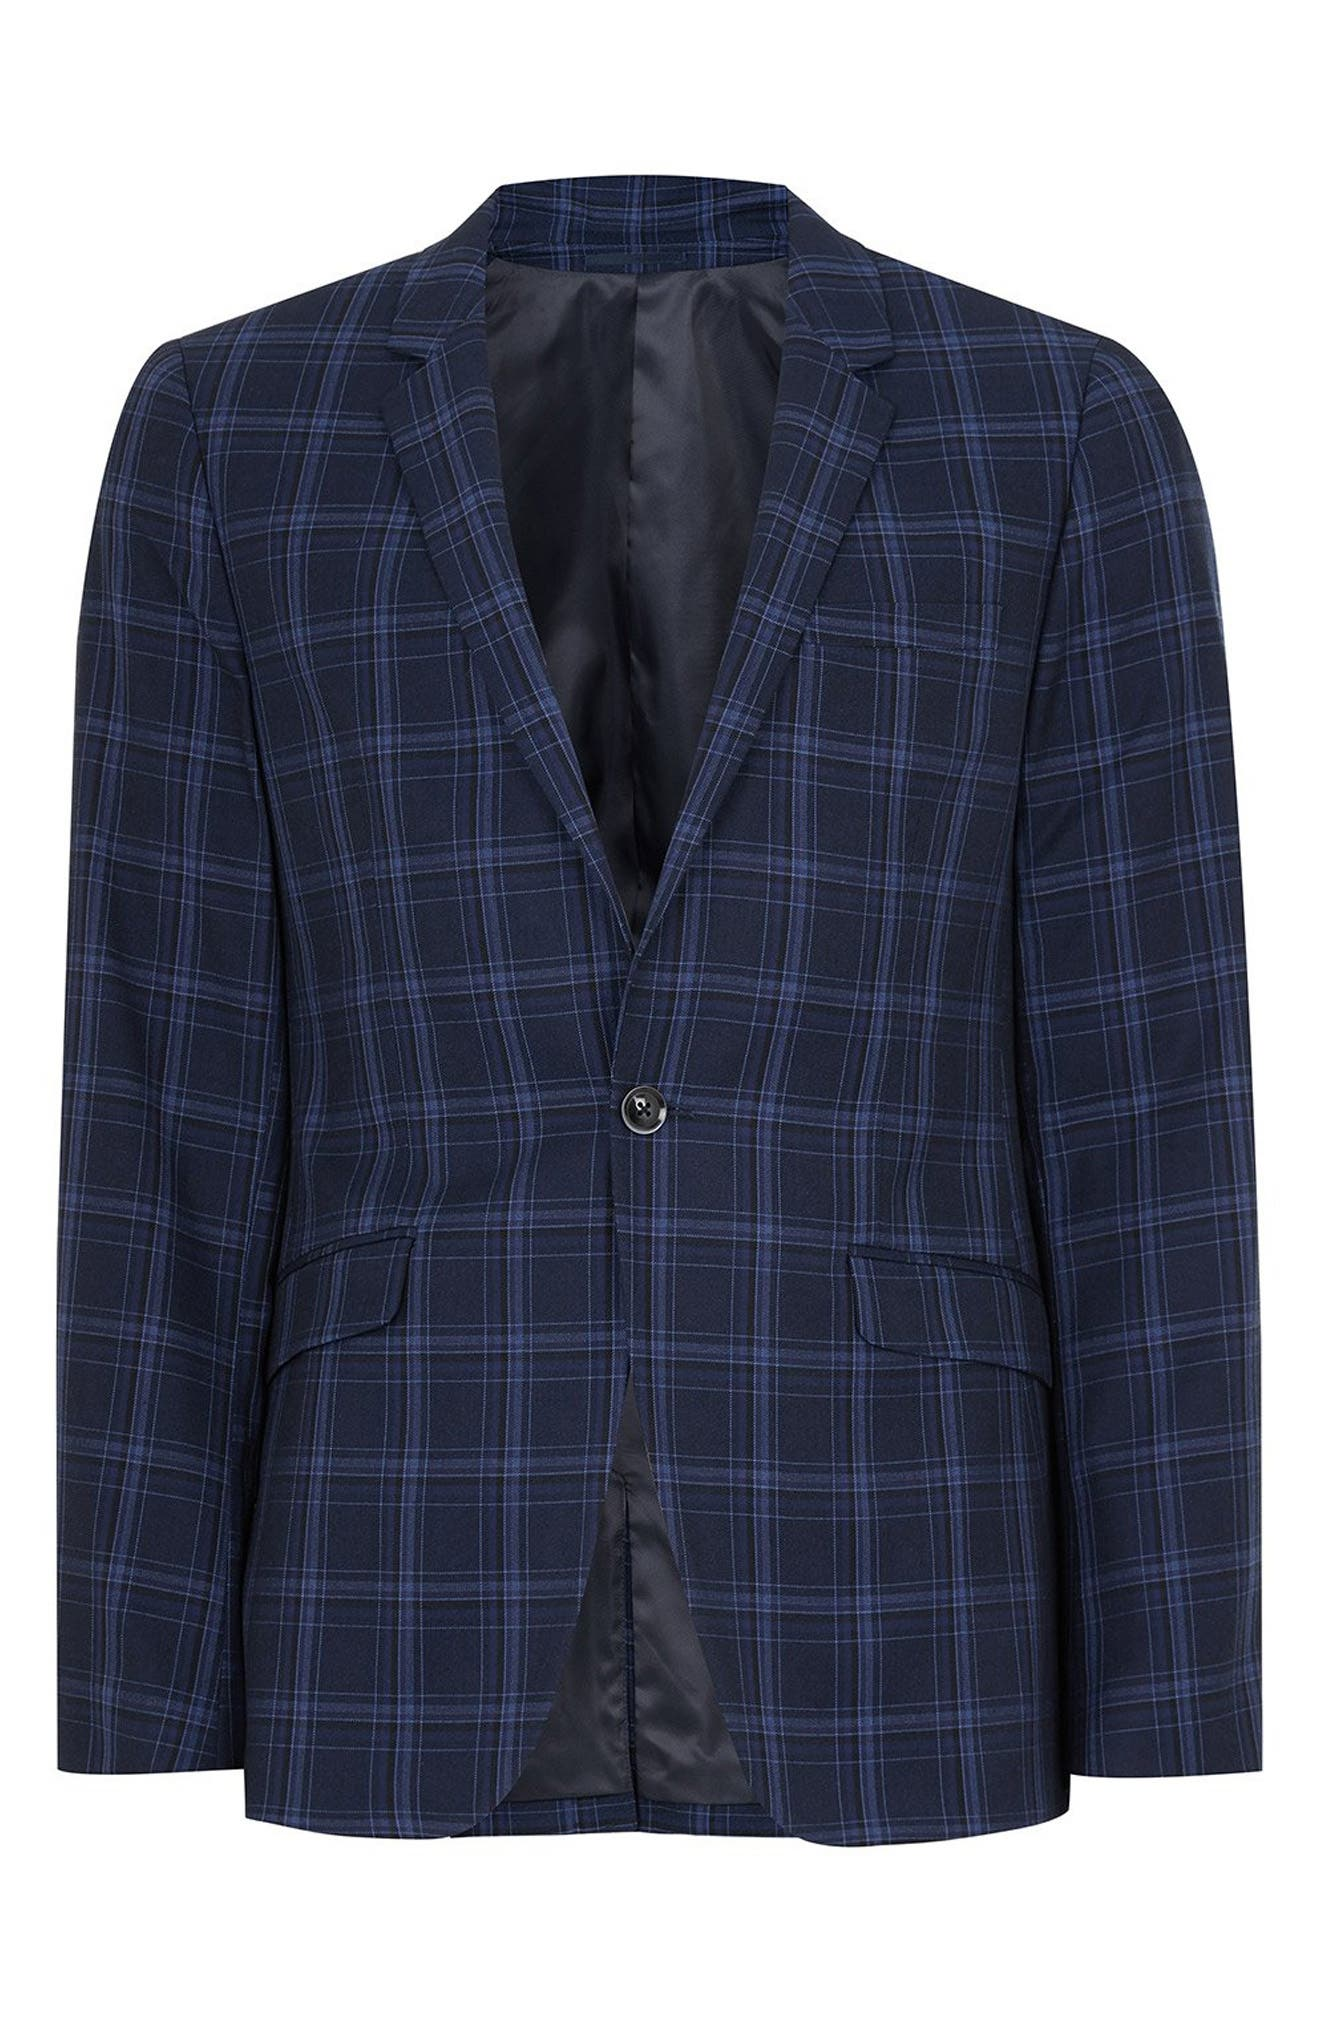 Skinny Fit Check Suit Jacket,                             Alternate thumbnail 4, color,                             BLUE